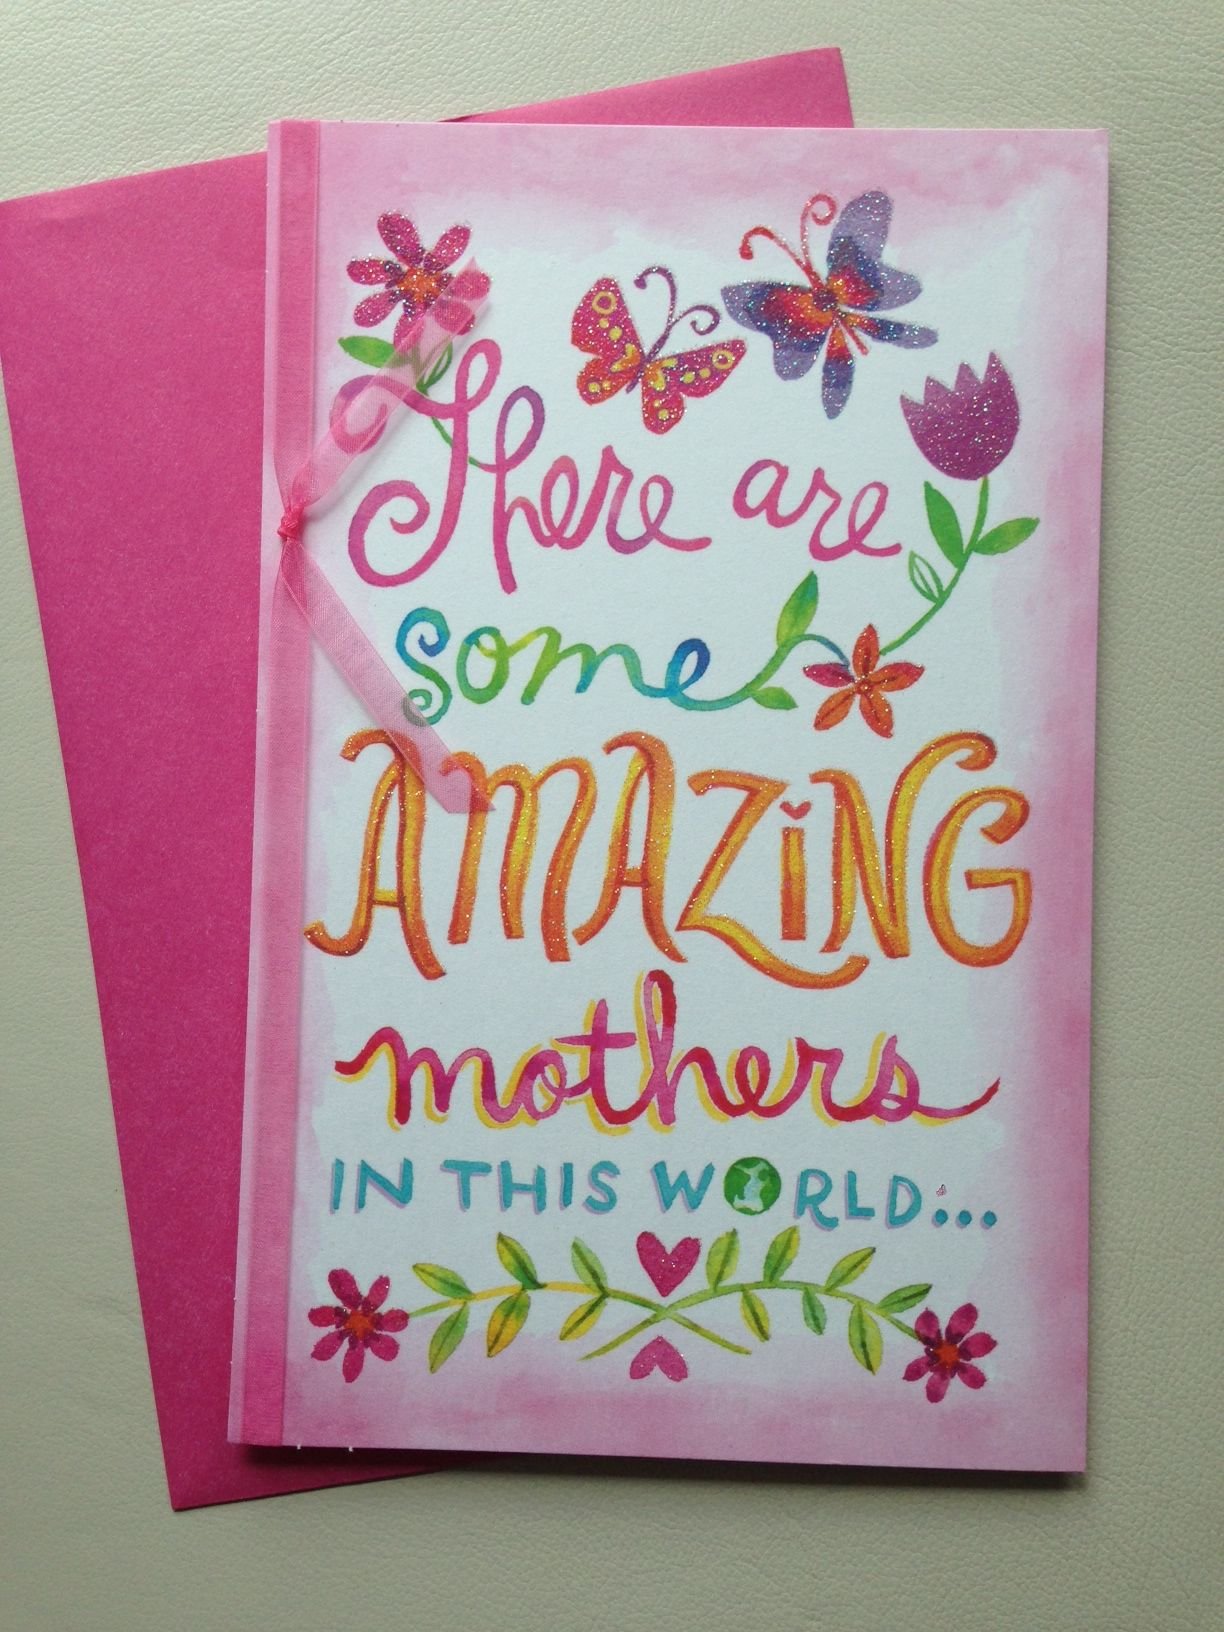 It is a privilege to design mothers day cards amazingmother it is a privilege to design mothers day cards amazingmother rolemodel american greetings m4hsunfo